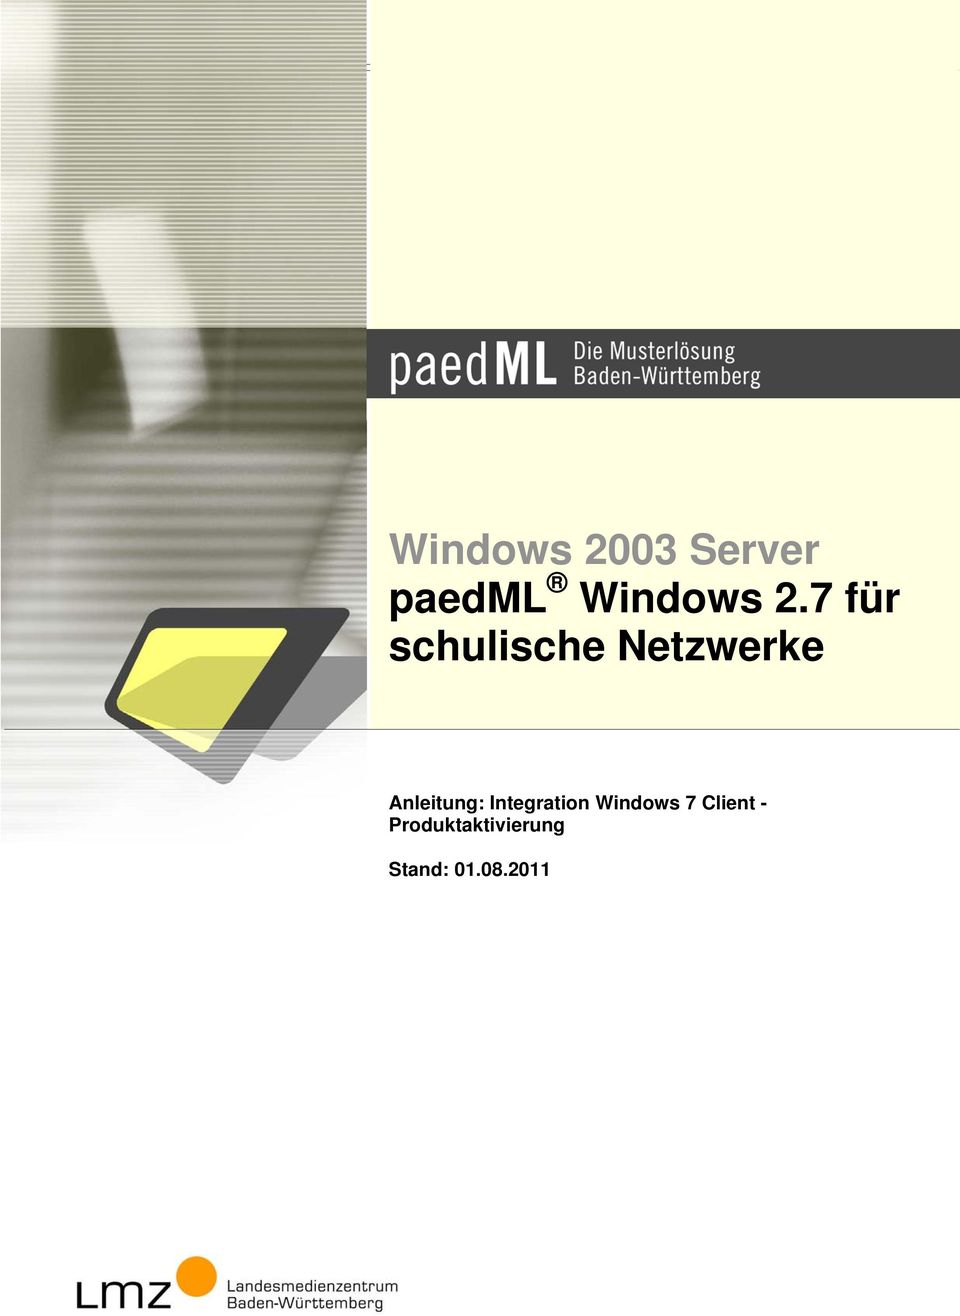 Anleitung: Integration Windows 7